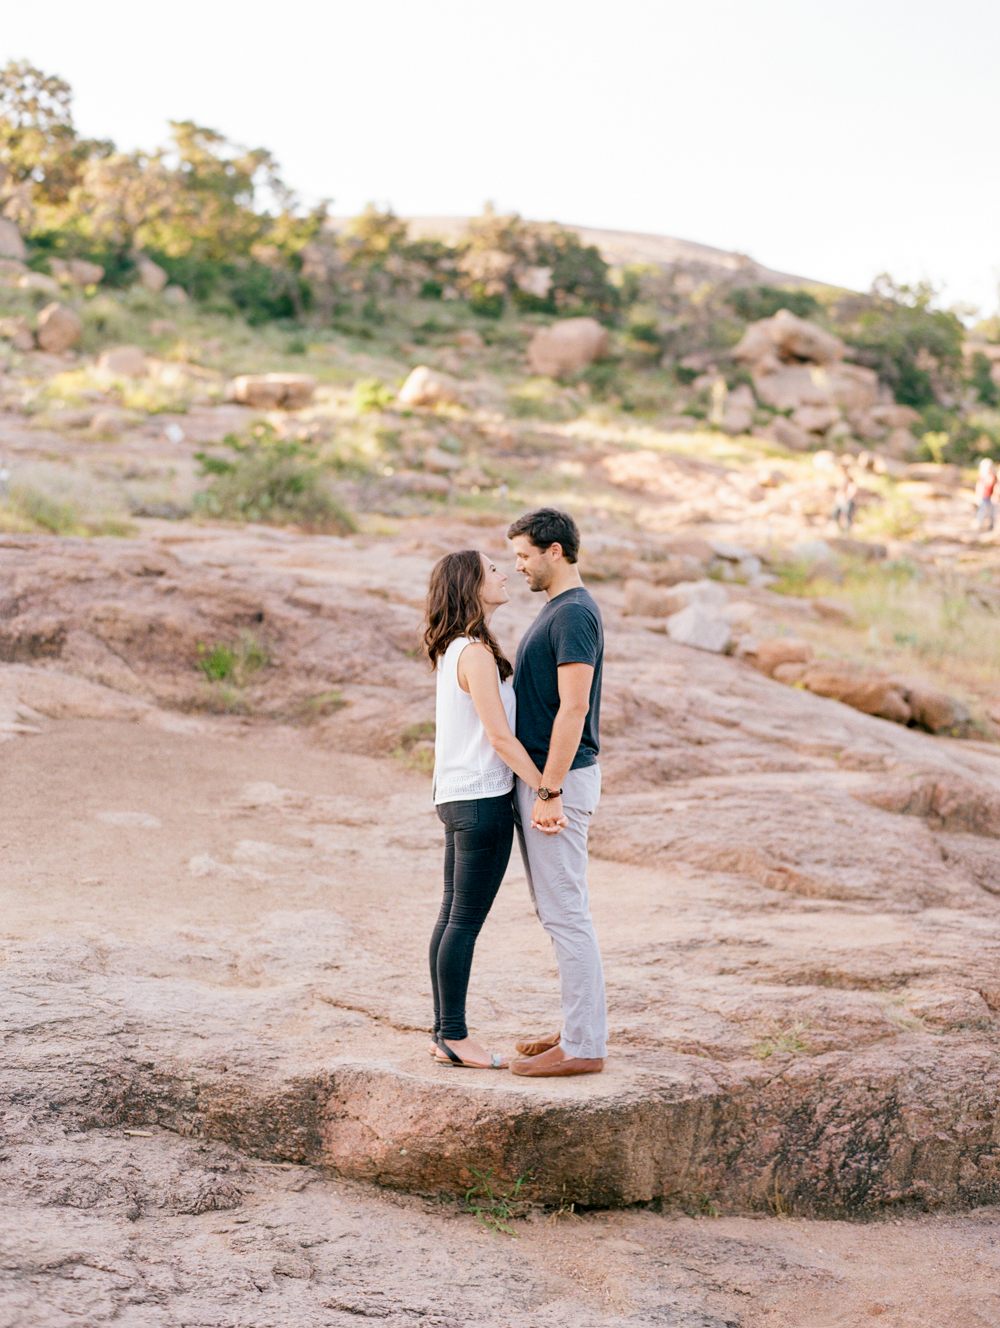 dana fernandez photography enchanted rock engagements photographer austin wedding destination film-12.jpg